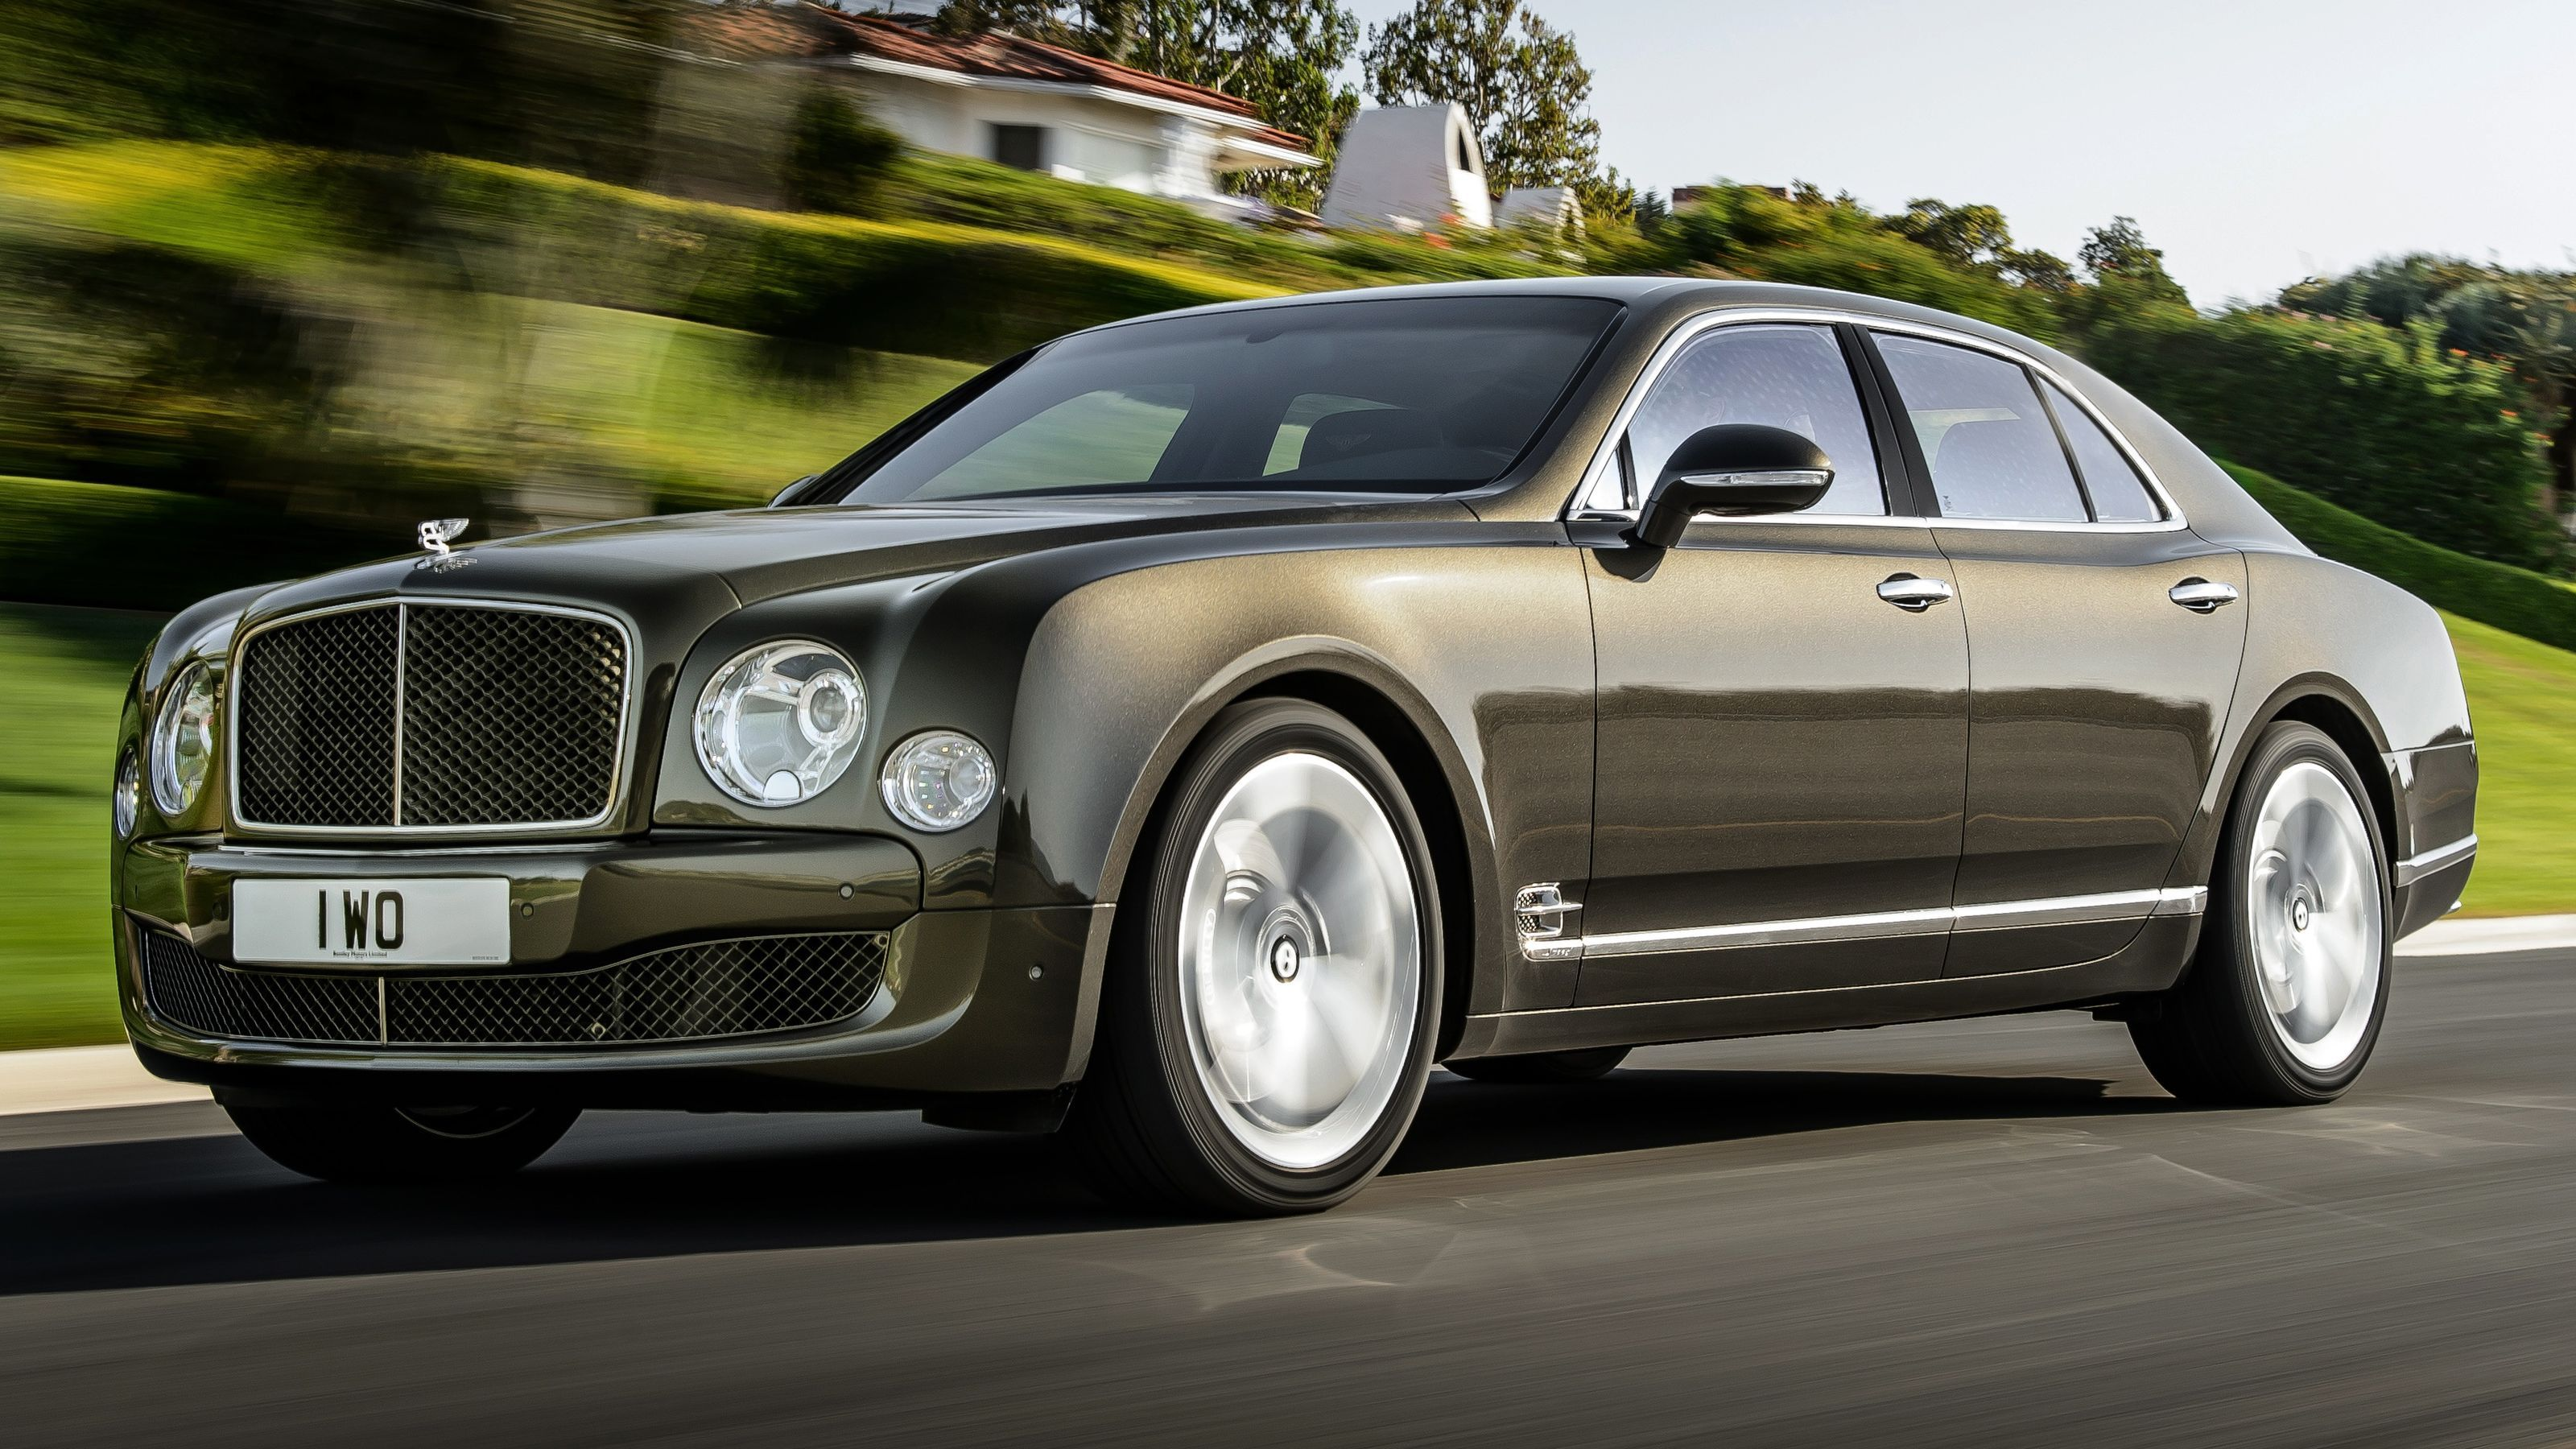 New Bentley flagship for the 1% of the 1% | Sedans and Cars